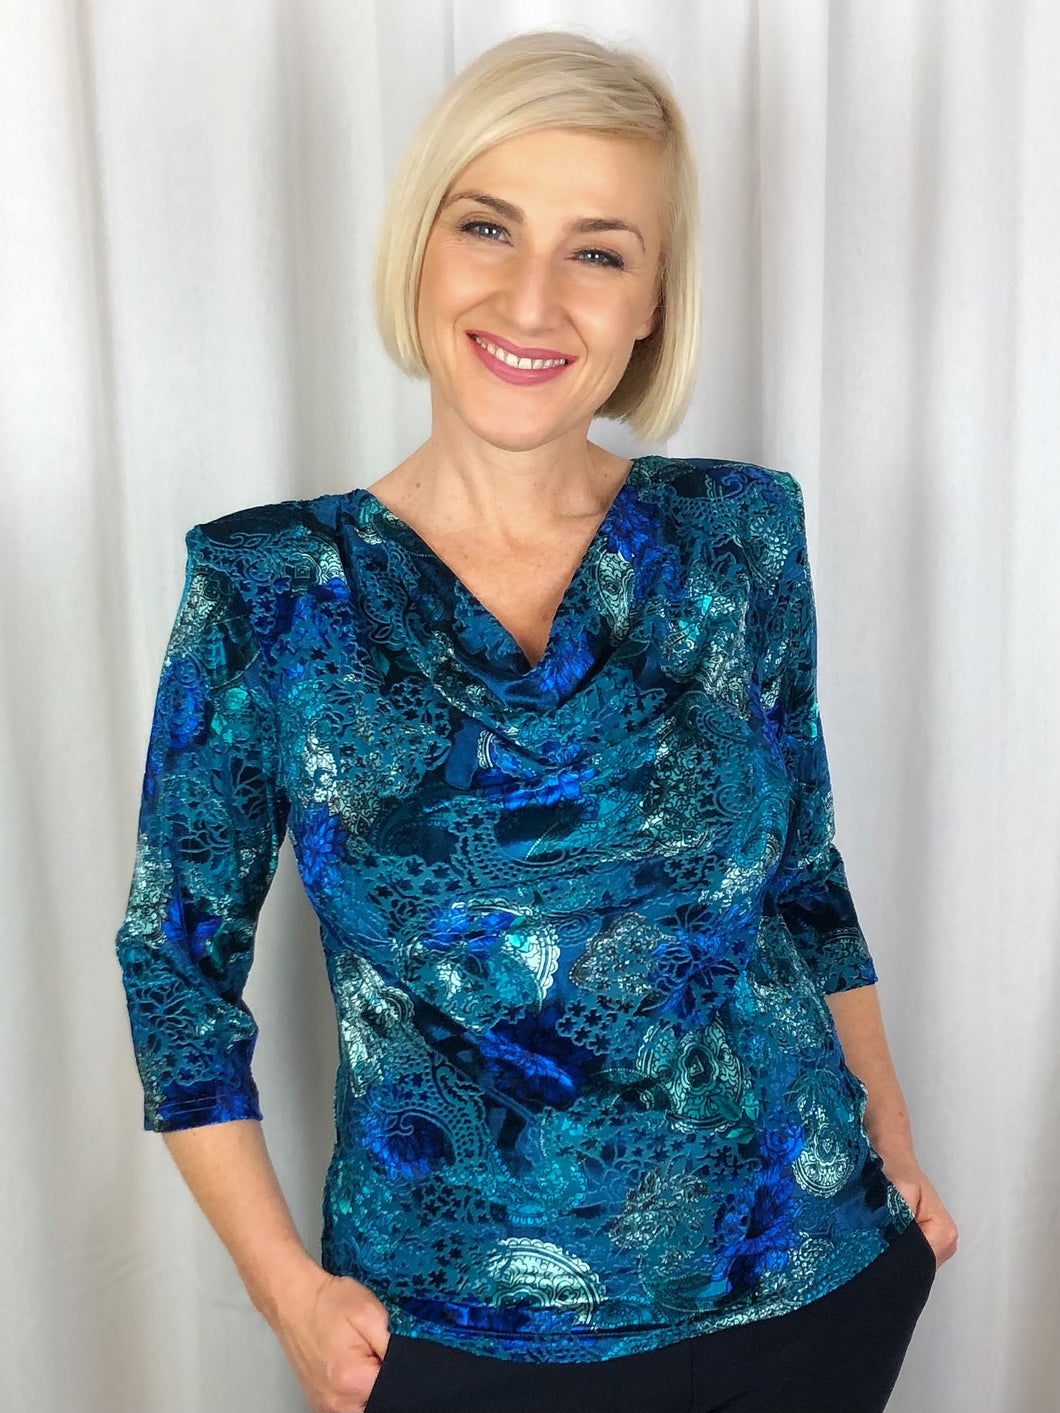 There's nothing more luxurious than the richness of velvet! Made in Australia, our 3/4 Sleeve Terrigal Cowl Neck is sumptuous and elegant for Autumn/Winter. Perfect for a special occasion or and evening out, the burnout velvet print in radiant jewel tones will have you sparkling. Made of Poly/Spandex, it's fully washable and drips dry with no ironing required.